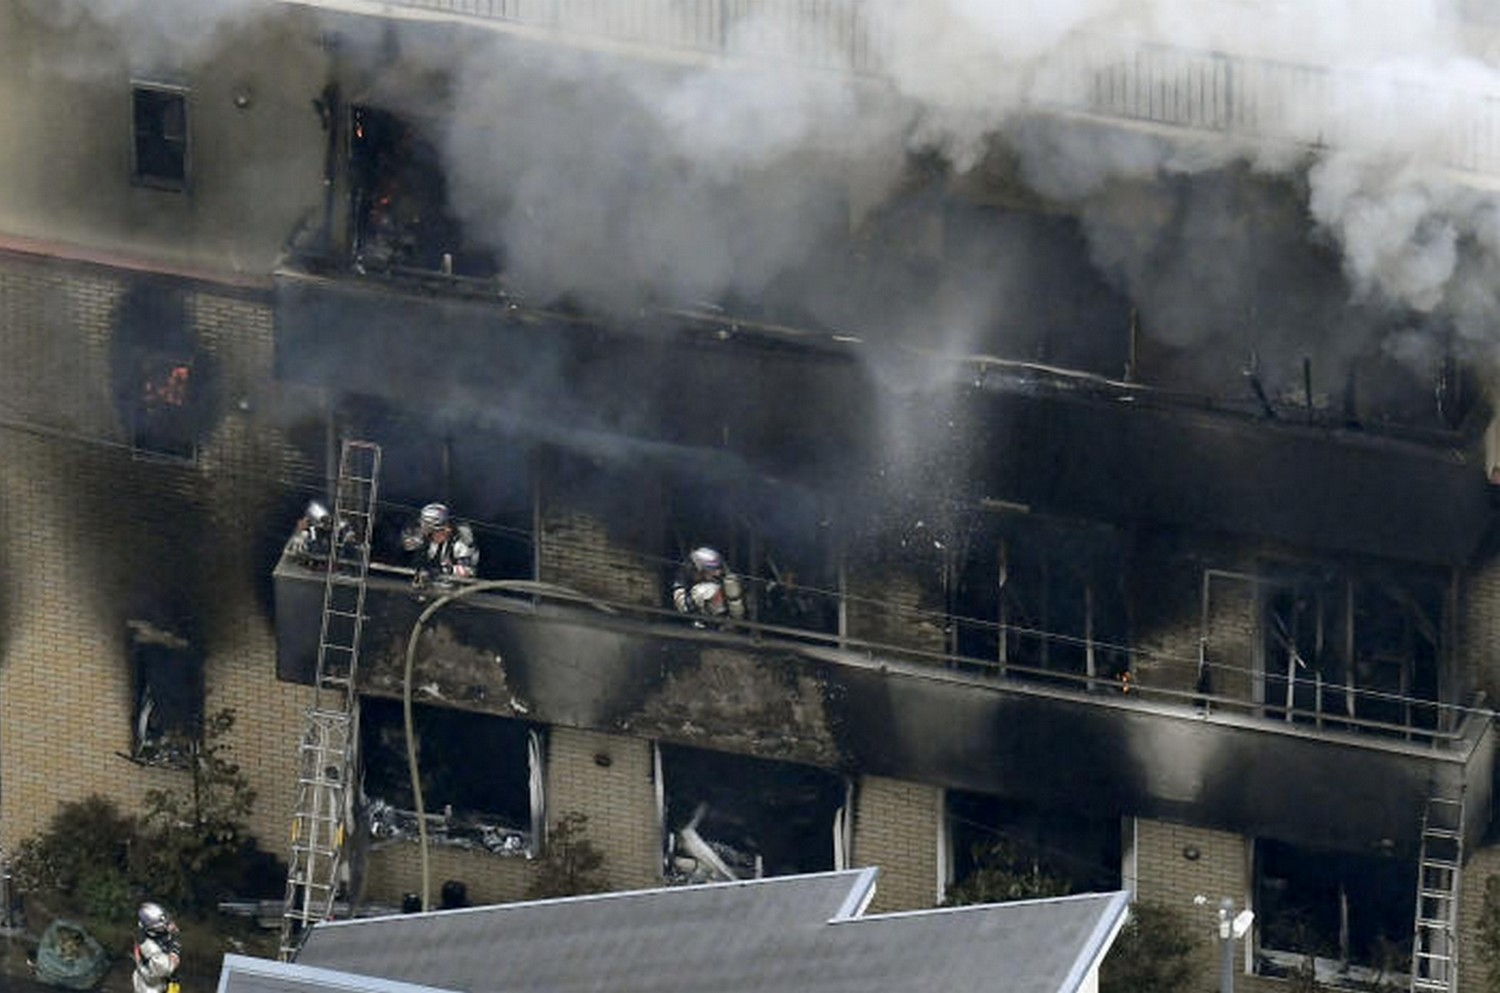 33 dead in Japan studio fire, rescue ops continue